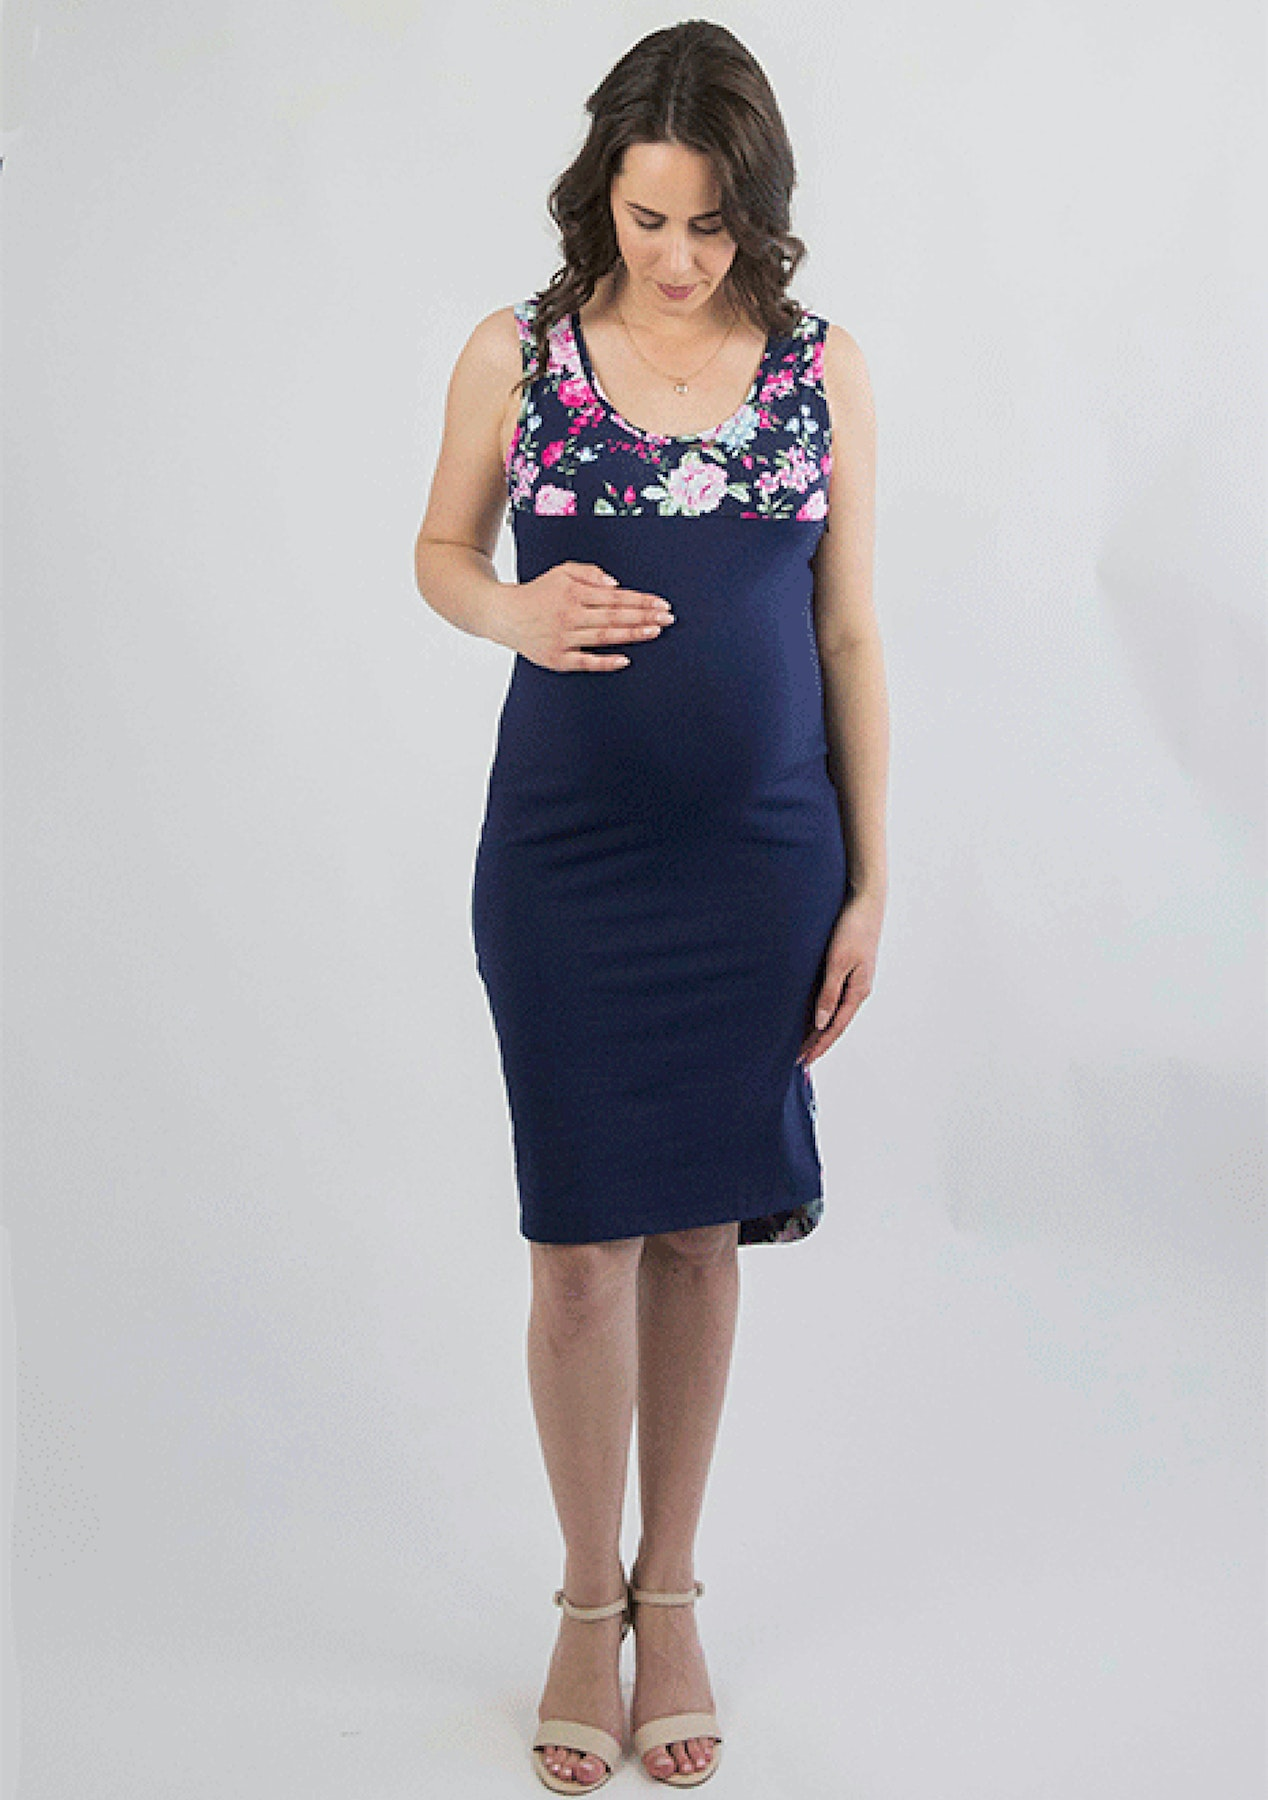 0c24f2a809b42 Mrs Smith - Nina Dress Maternity dress - Midnight & Floral - The Maternity  Shop - Up to 70% Off - Onceit